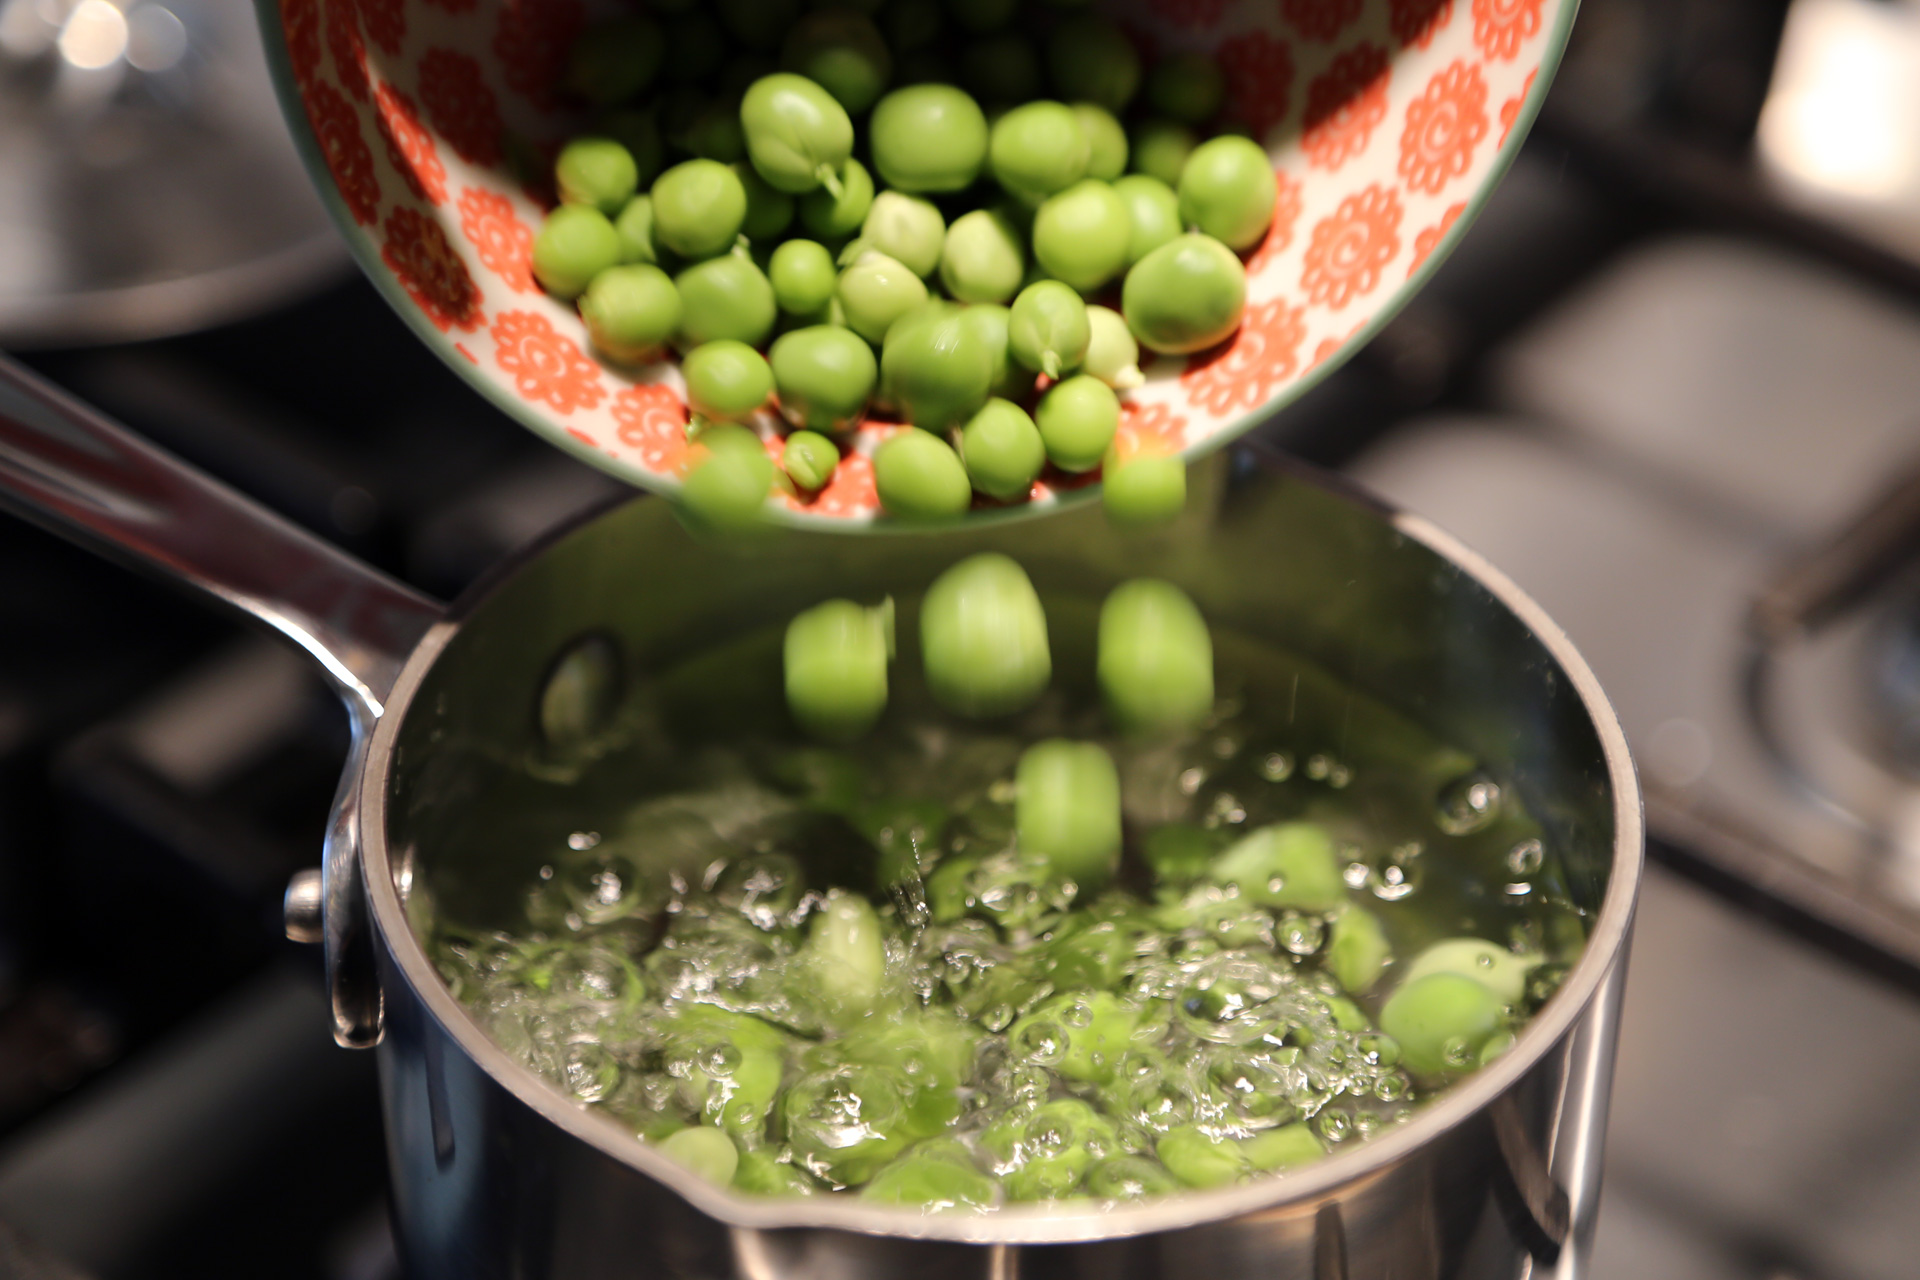 Add the peas and cook until tender, about 5 minutes.